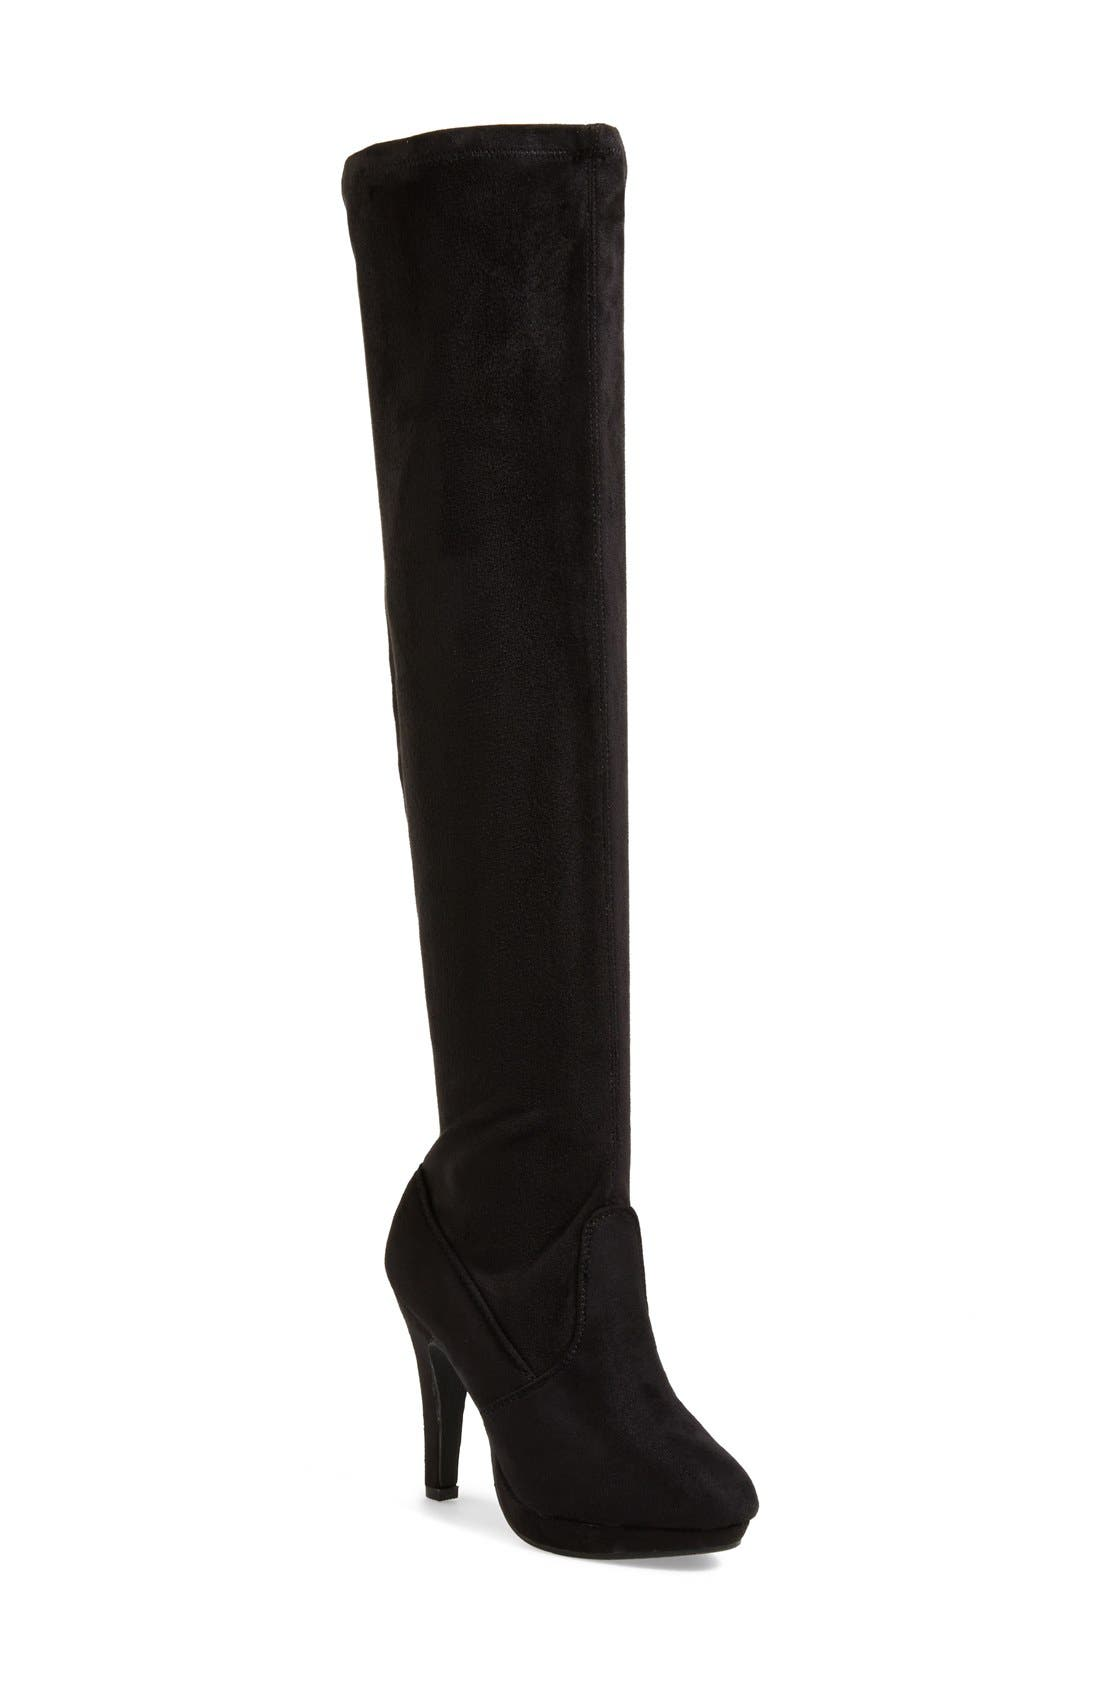 REPORT 'Nadya' Over The Knee Boot,                         Main,                         color, Black